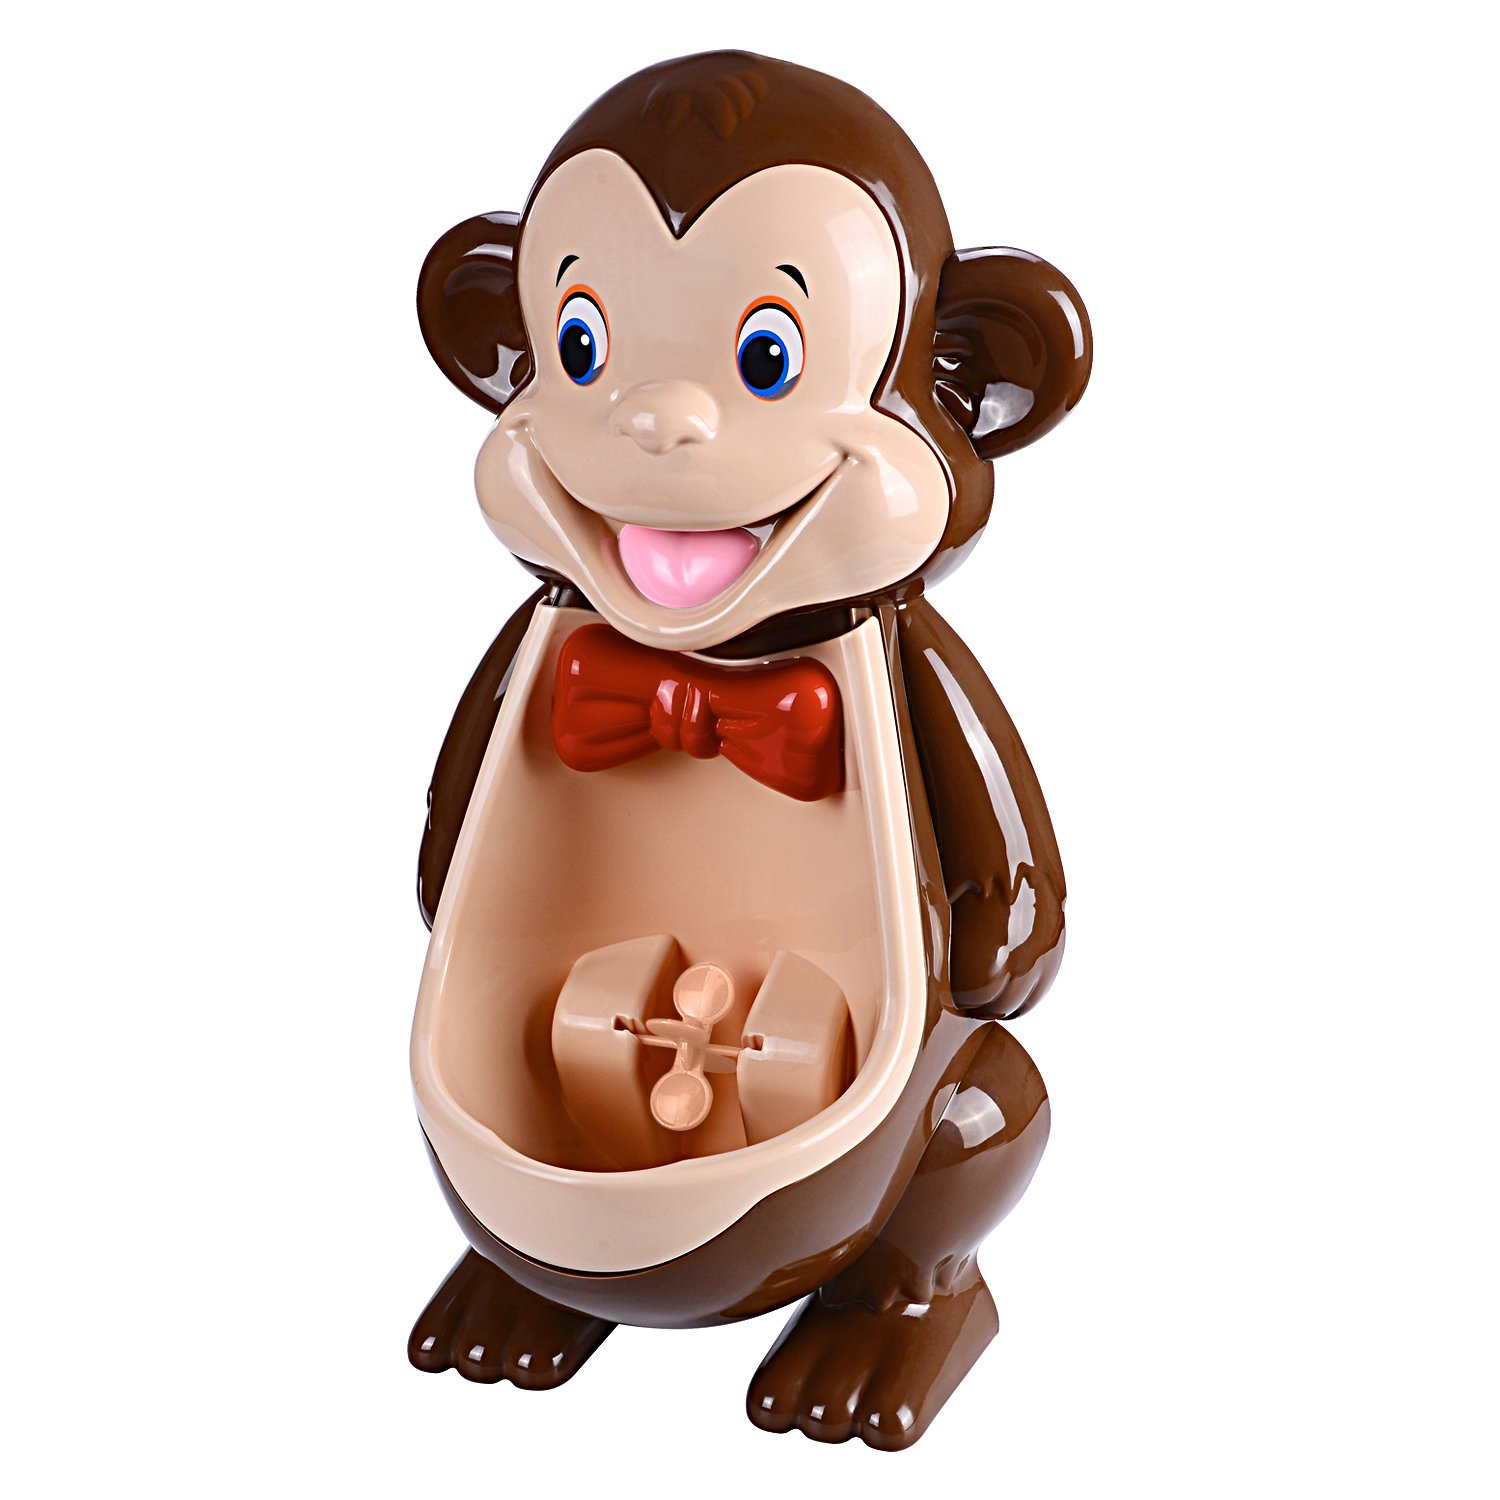 Boys Cute Monkey Potty Training Urinal with Funny Aiming Target Windmill by mkool M-HZ